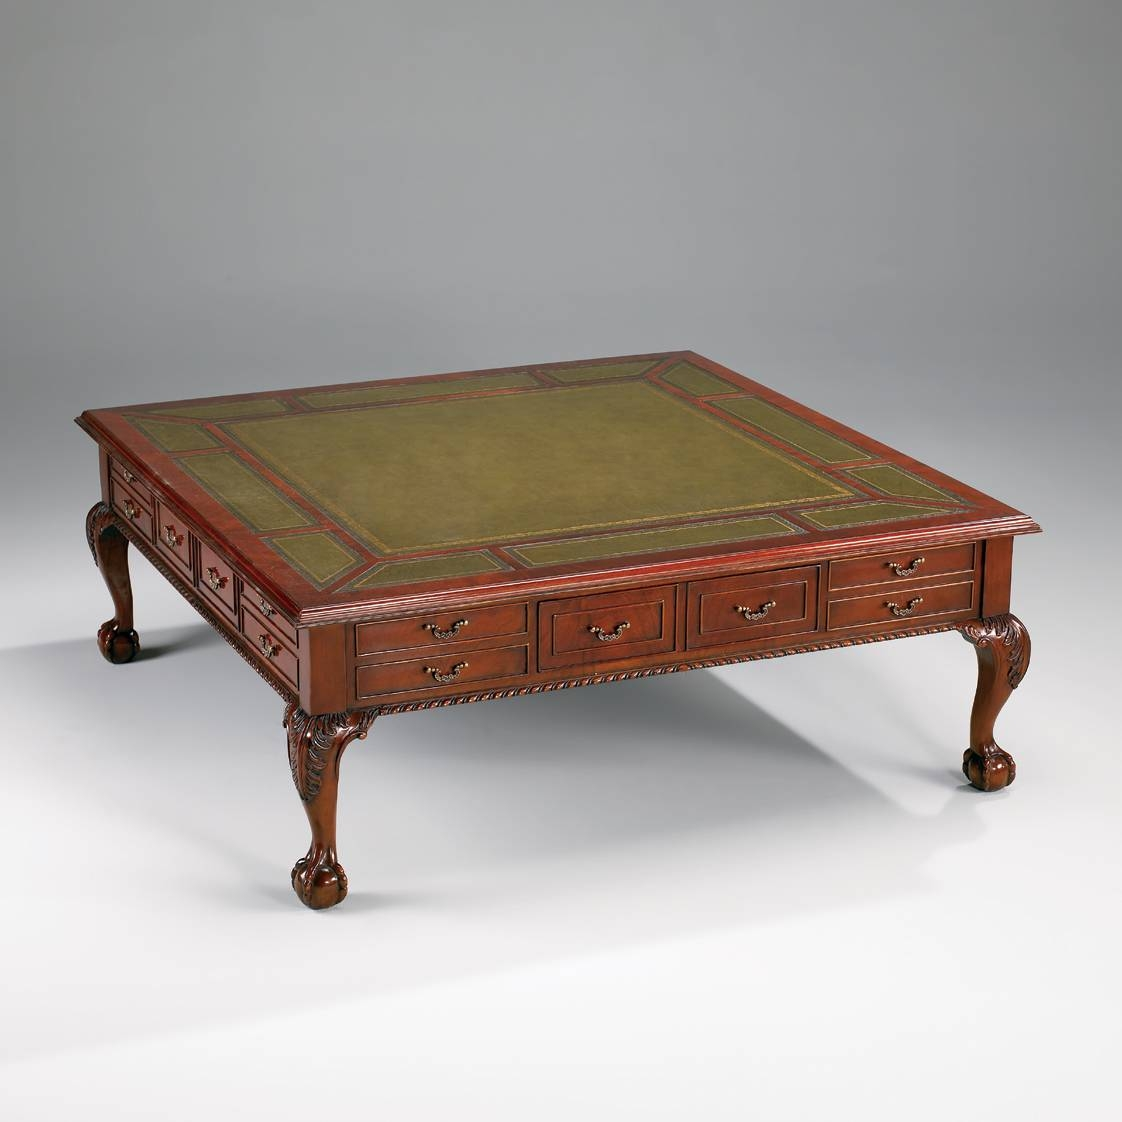 Enchanting Bombay Company Coffee Table For Your Inspirational Home within Bombay Coffee Tables (Image 15 of 30)